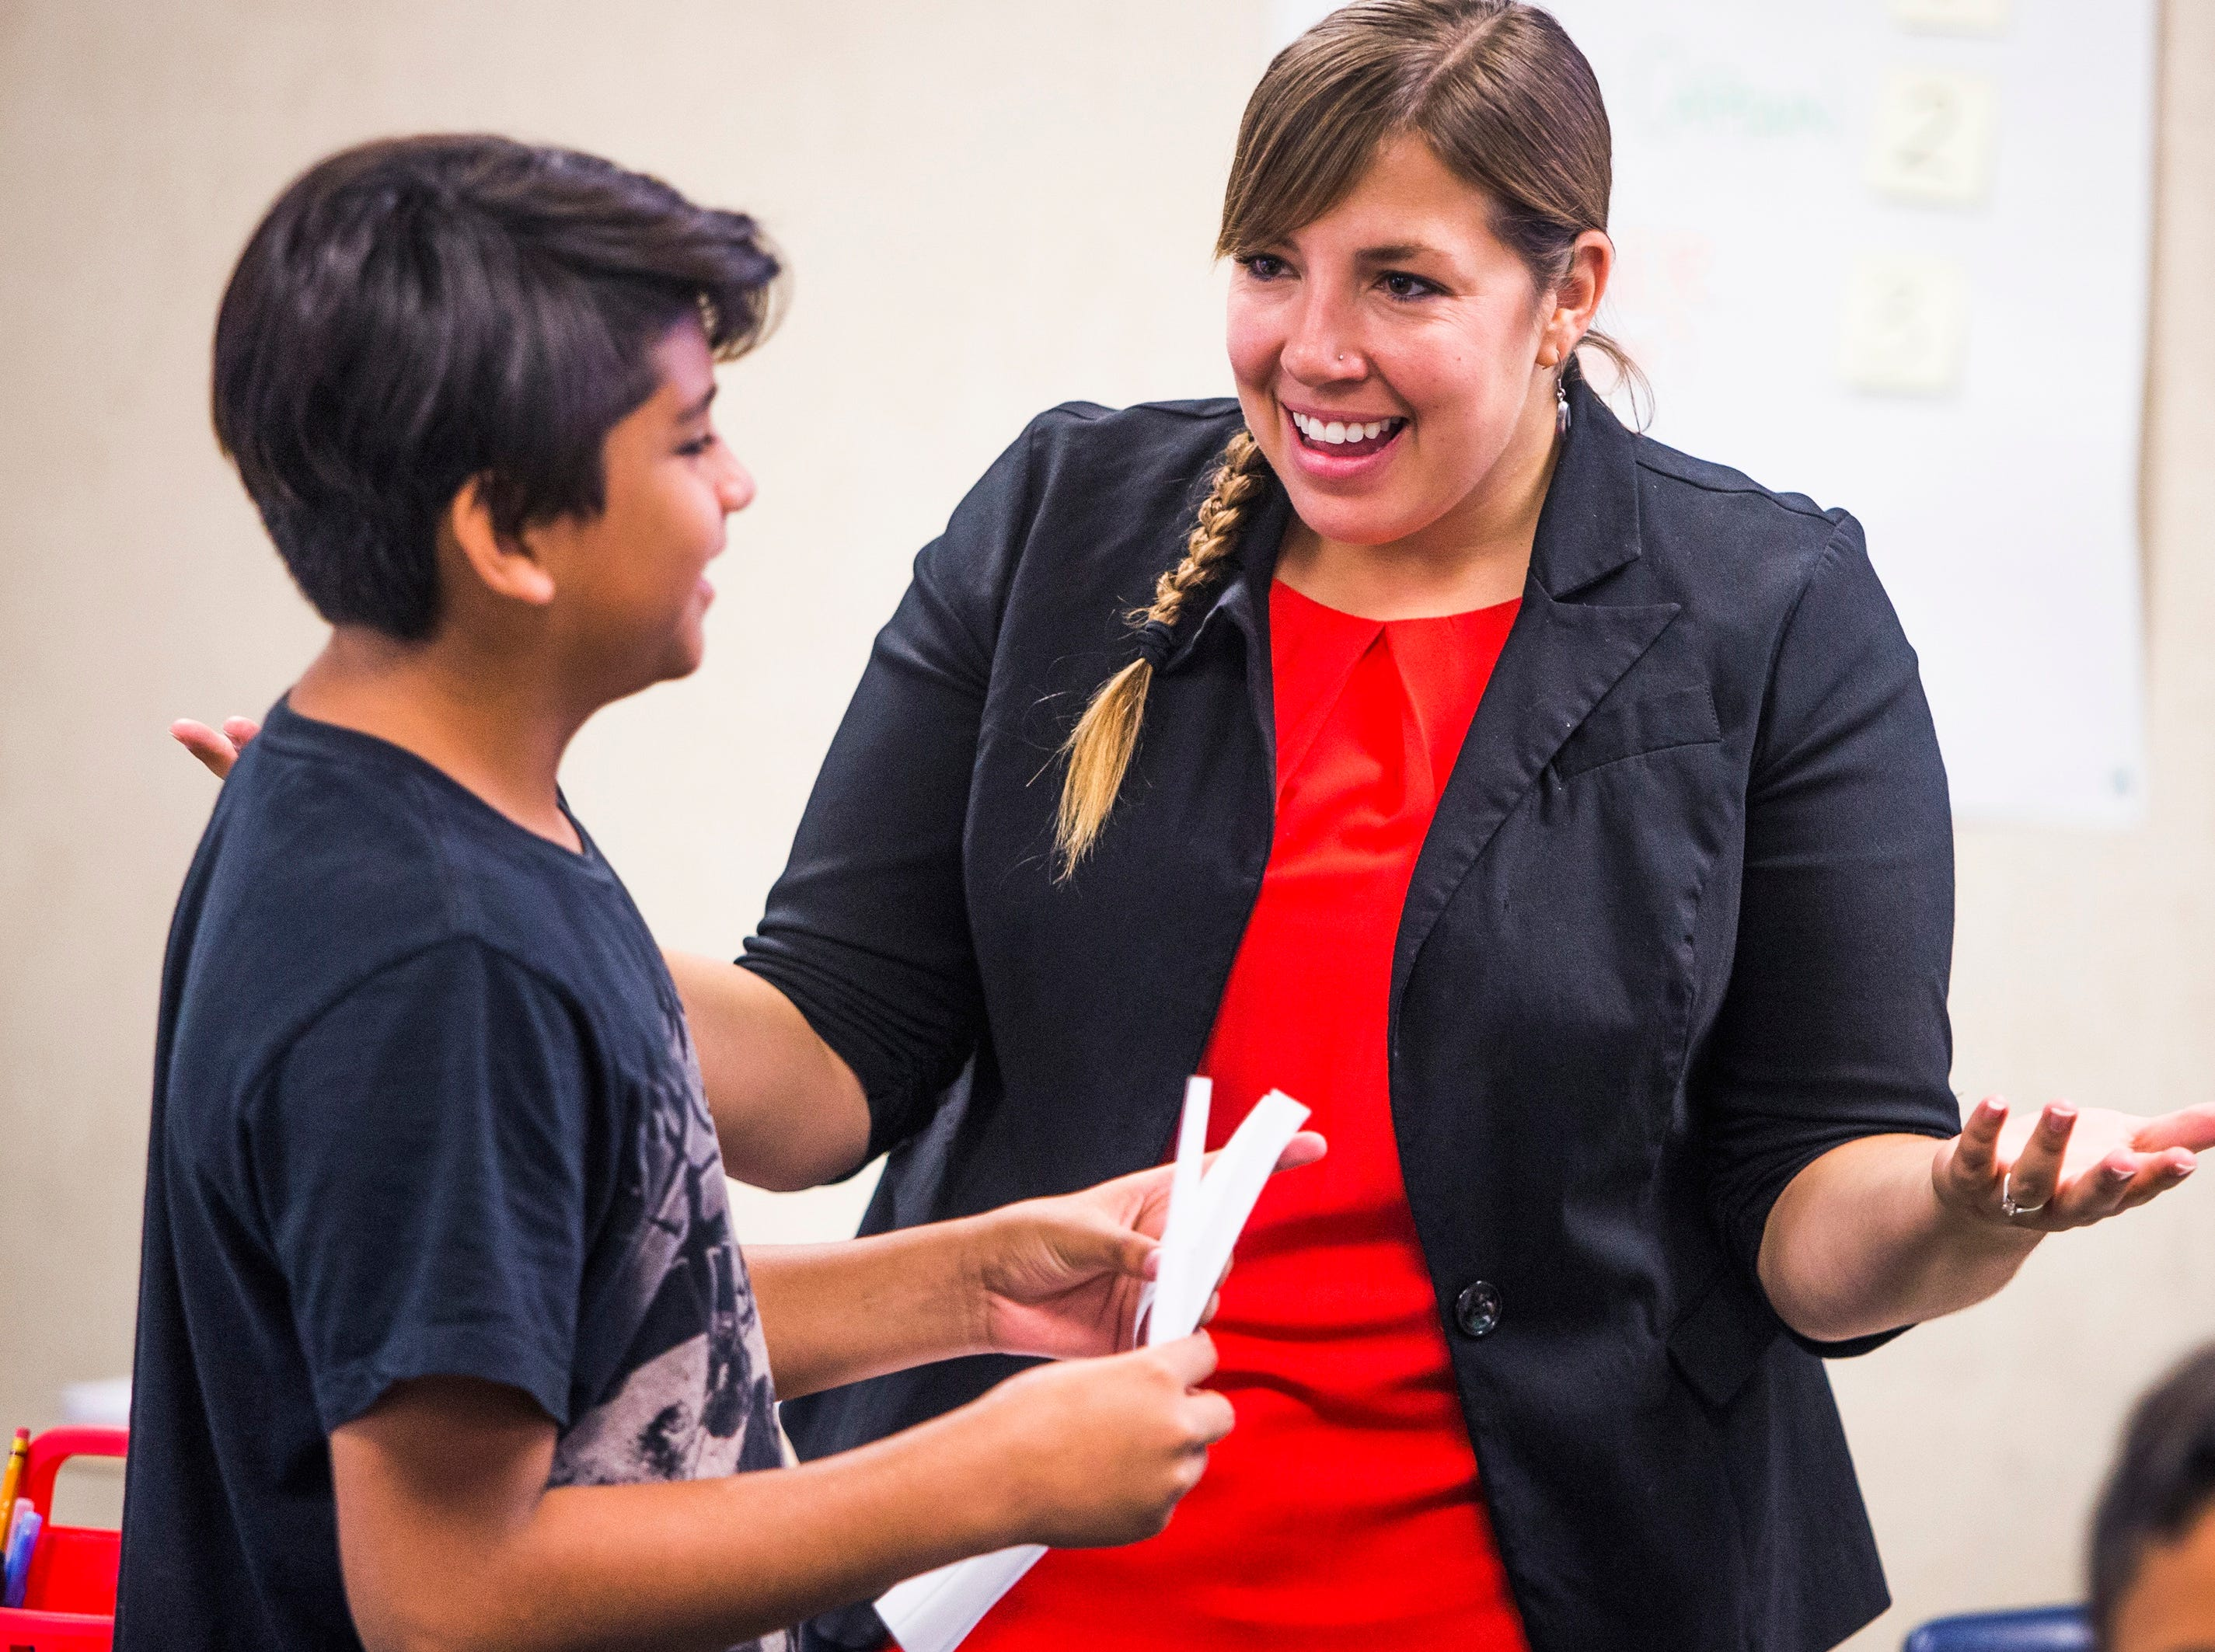 Phoenix, AZ – Rebecca Garelli speaks with Giovanni Romero Rodriguez, 11, during 6th grade science class at Sevilla West Elementary School.